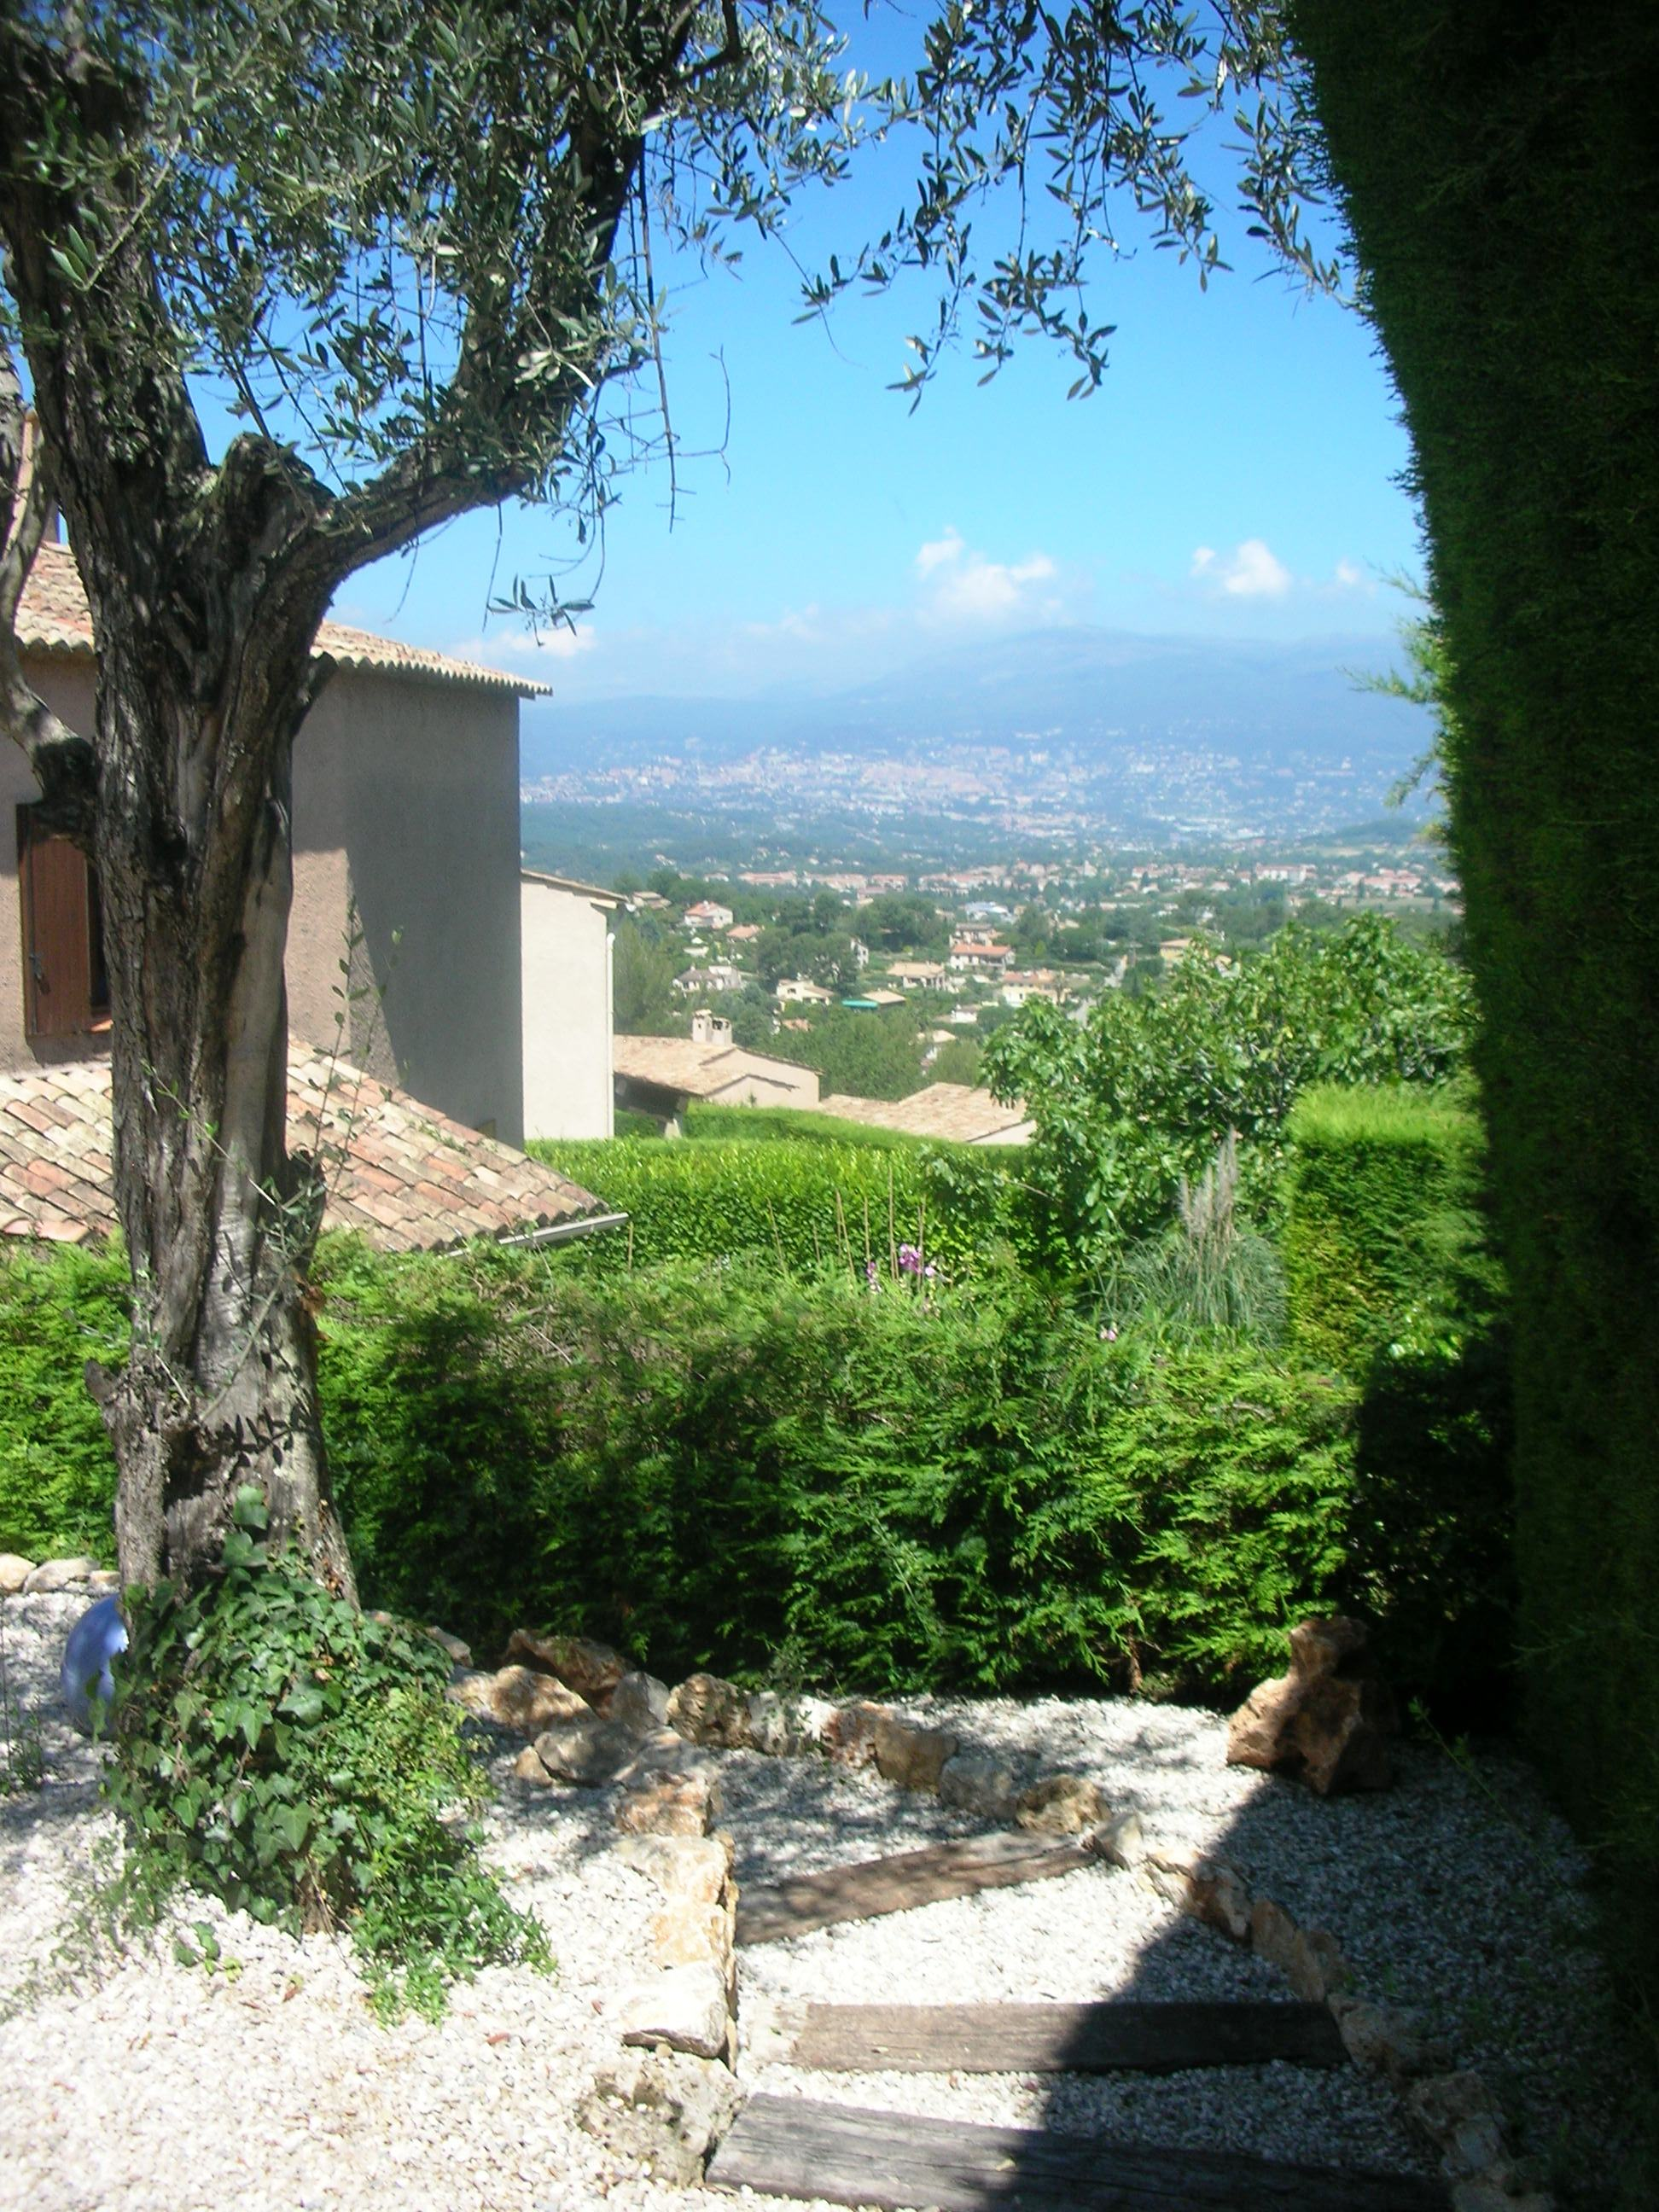 Office De Tourisme De Mougins Sour Cream And Moulin De Mougins Chris France S Blog